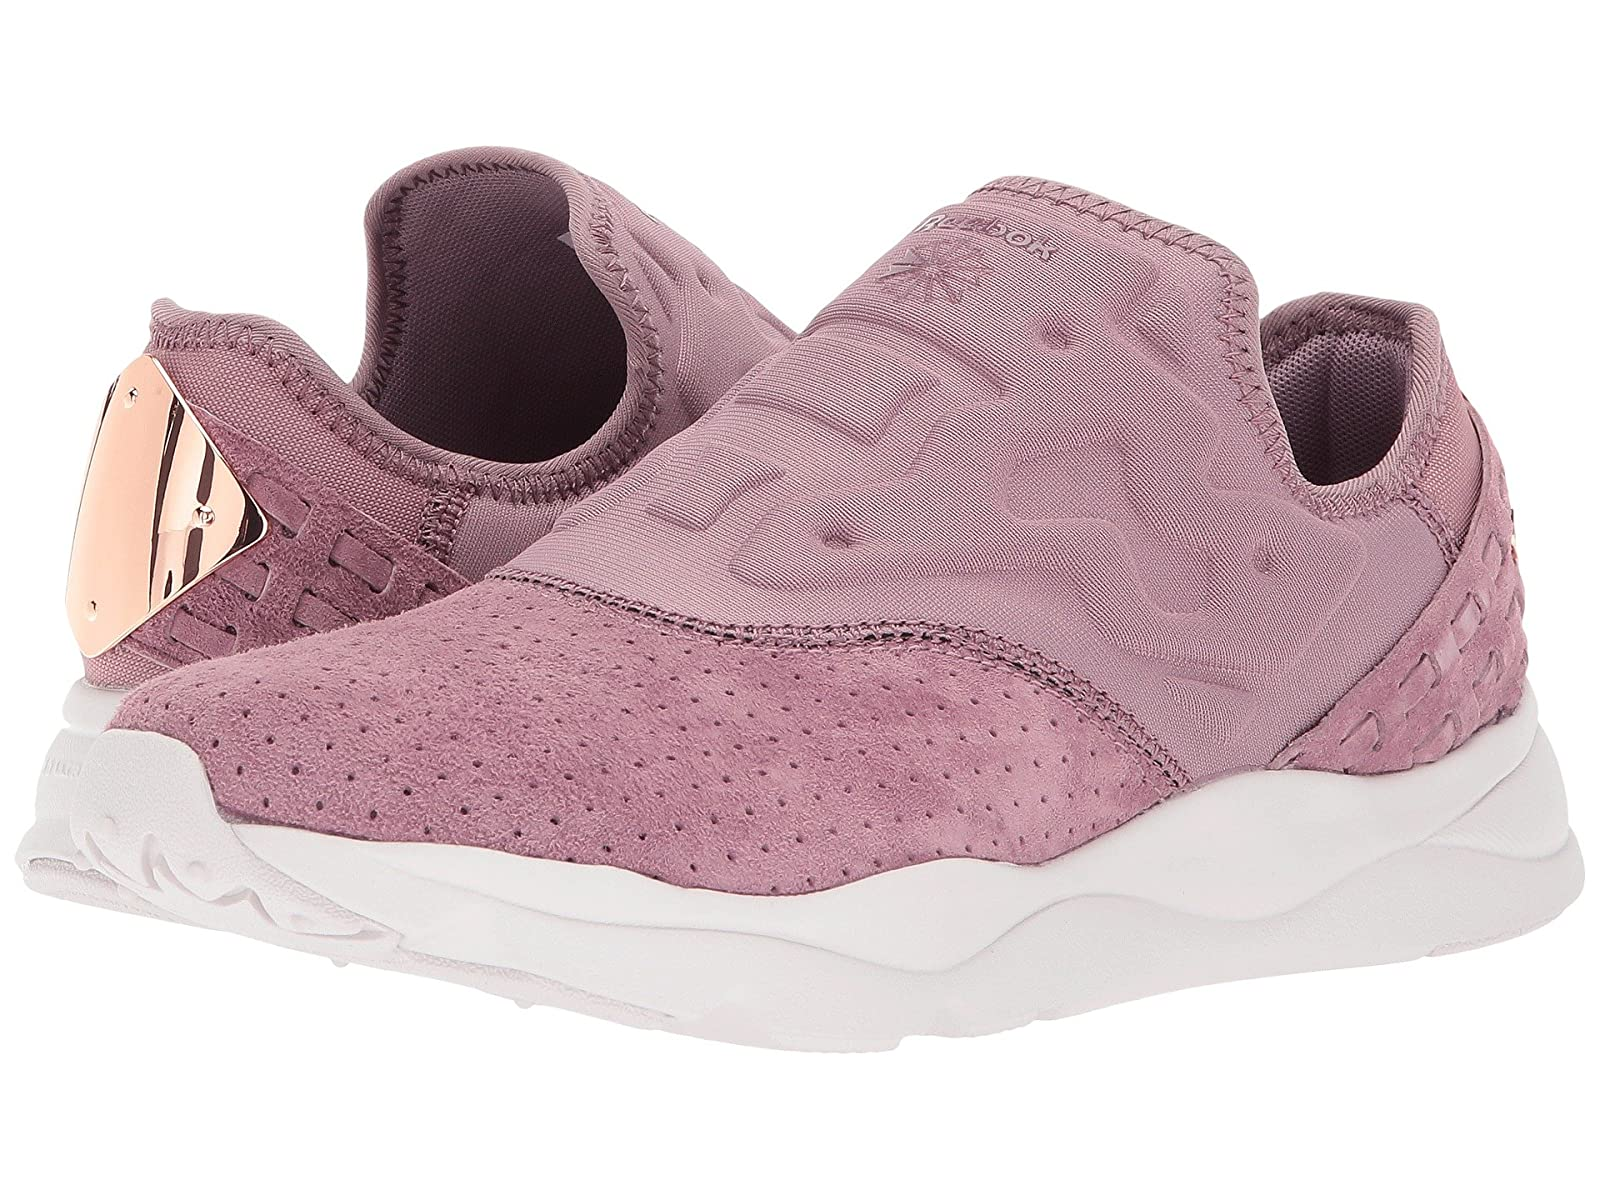 Reebok Lifestyle Furylite Slip-On FBTCheap and distinctive eye-catching shoes